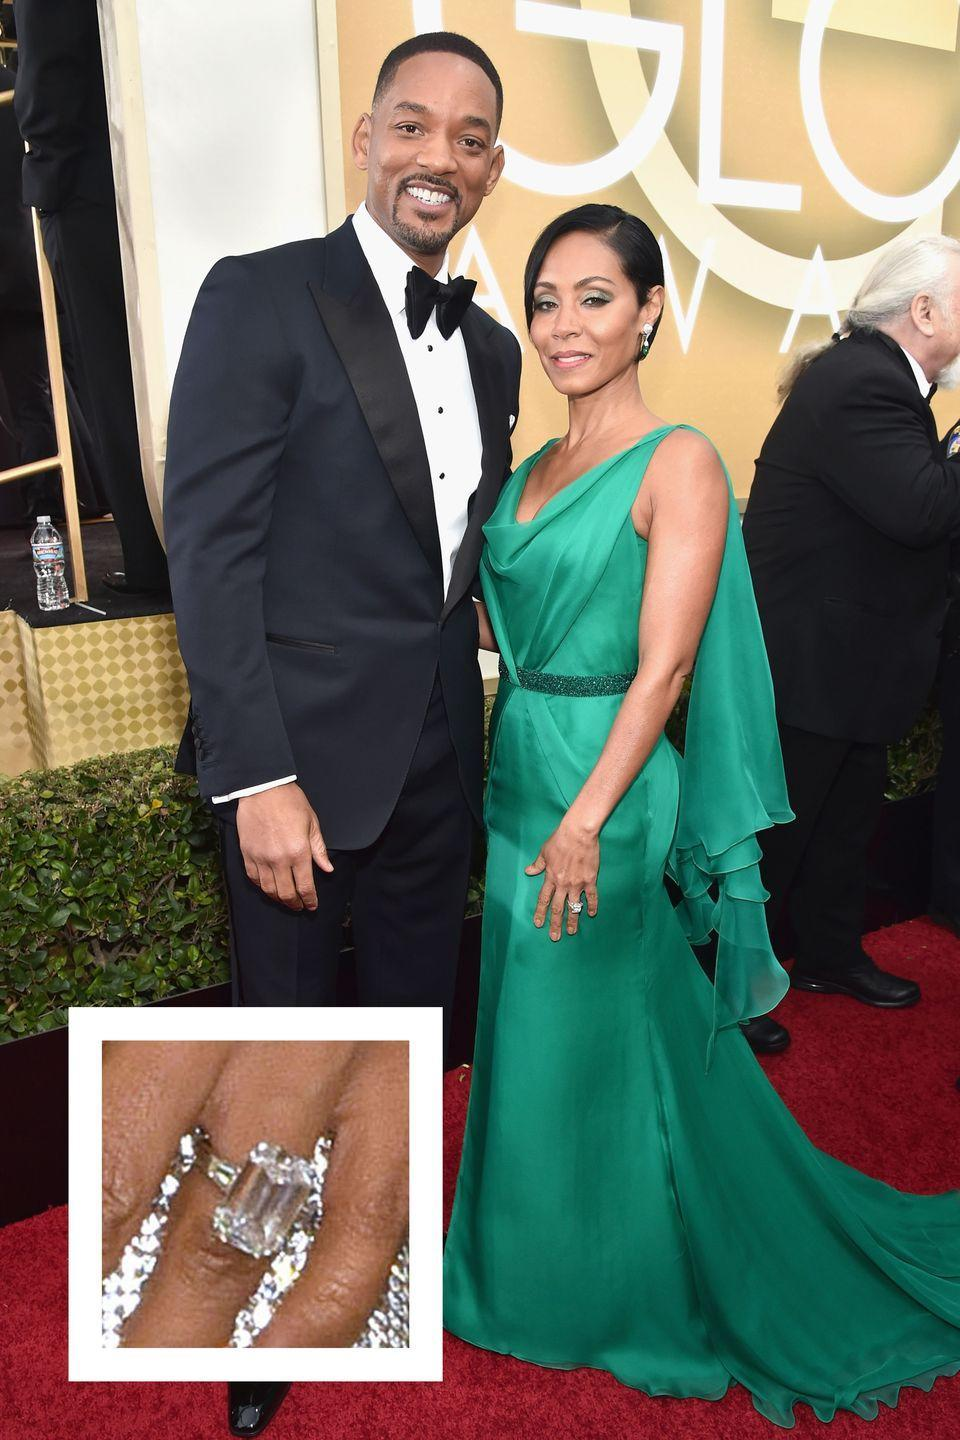 """<p>Will Smith proposed to Jada in November 1997 with a jaw-dropping emerald-cut diamond engagement ring. The center stone is estimate to be over 12 carats in size, and it's surrounded by two baguette-cut stones, <a href=""""http://www.vogue.co.uk/gallery/celebrity-engagement-rings-pictures"""" rel=""""nofollow noopener"""" target=""""_blank"""" data-ylk=""""slk:Vogue UK reports"""" class=""""link rapid-noclick-resp""""><em>Vogue UK</em> reports</a>. The ring is estimated to be worth $250,000, <a href=""""http://www.instyle.com/celebrity/star-couples/celebrity-engagement-rings"""" rel=""""nofollow noopener"""" target=""""_blank"""" data-ylk=""""slk:InStyle reports."""" class=""""link rapid-noclick-resp""""><em>InStyle</em> reports.</a> </p>"""